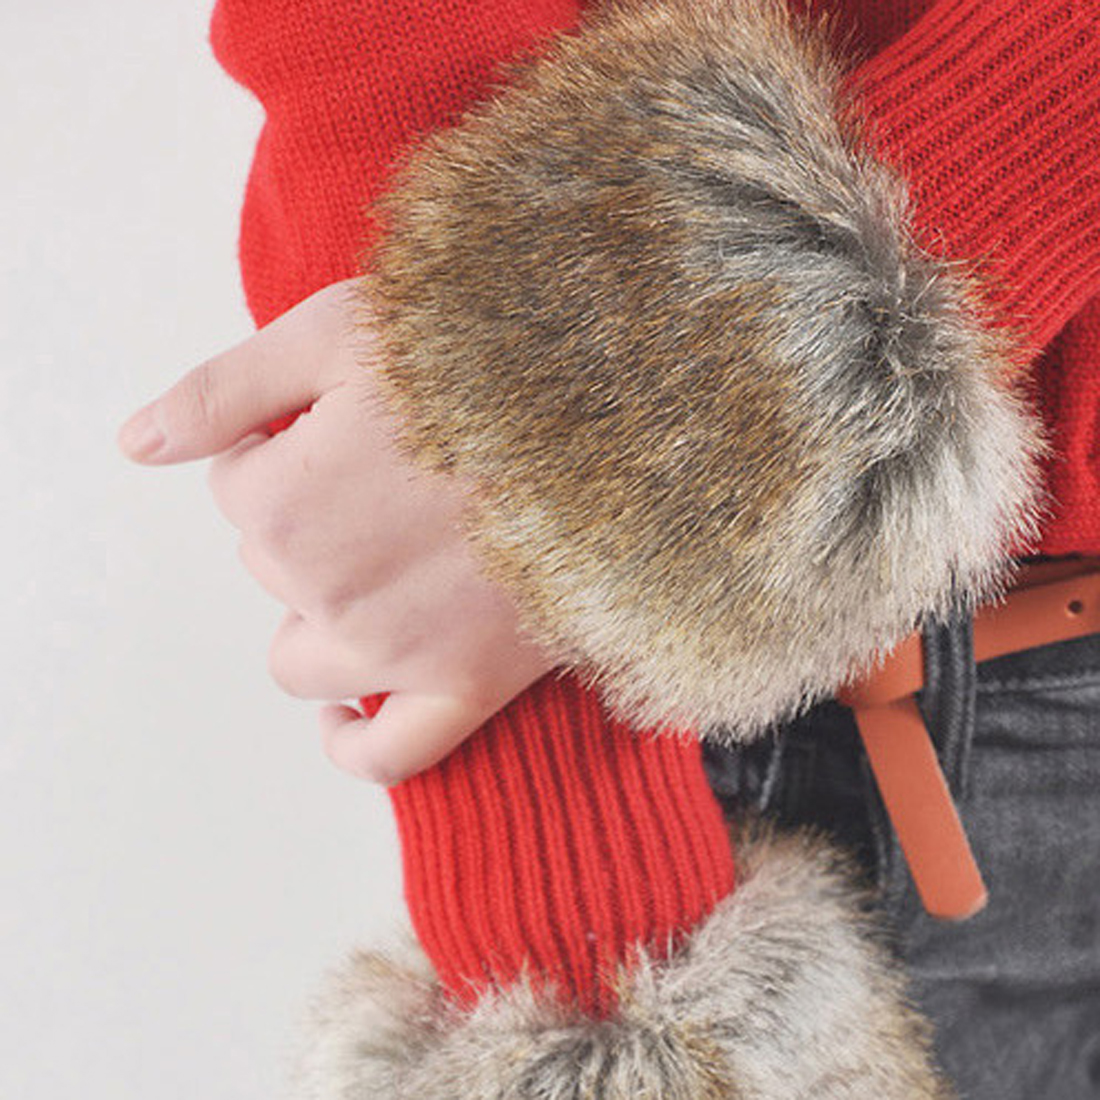 Fashion Women Winter Arm Warmers Faux Fur Wrist Slap On Cuffs Solid Ladies Plush Wrist Protector Warmer Cuffs Arm Warmers Wraps